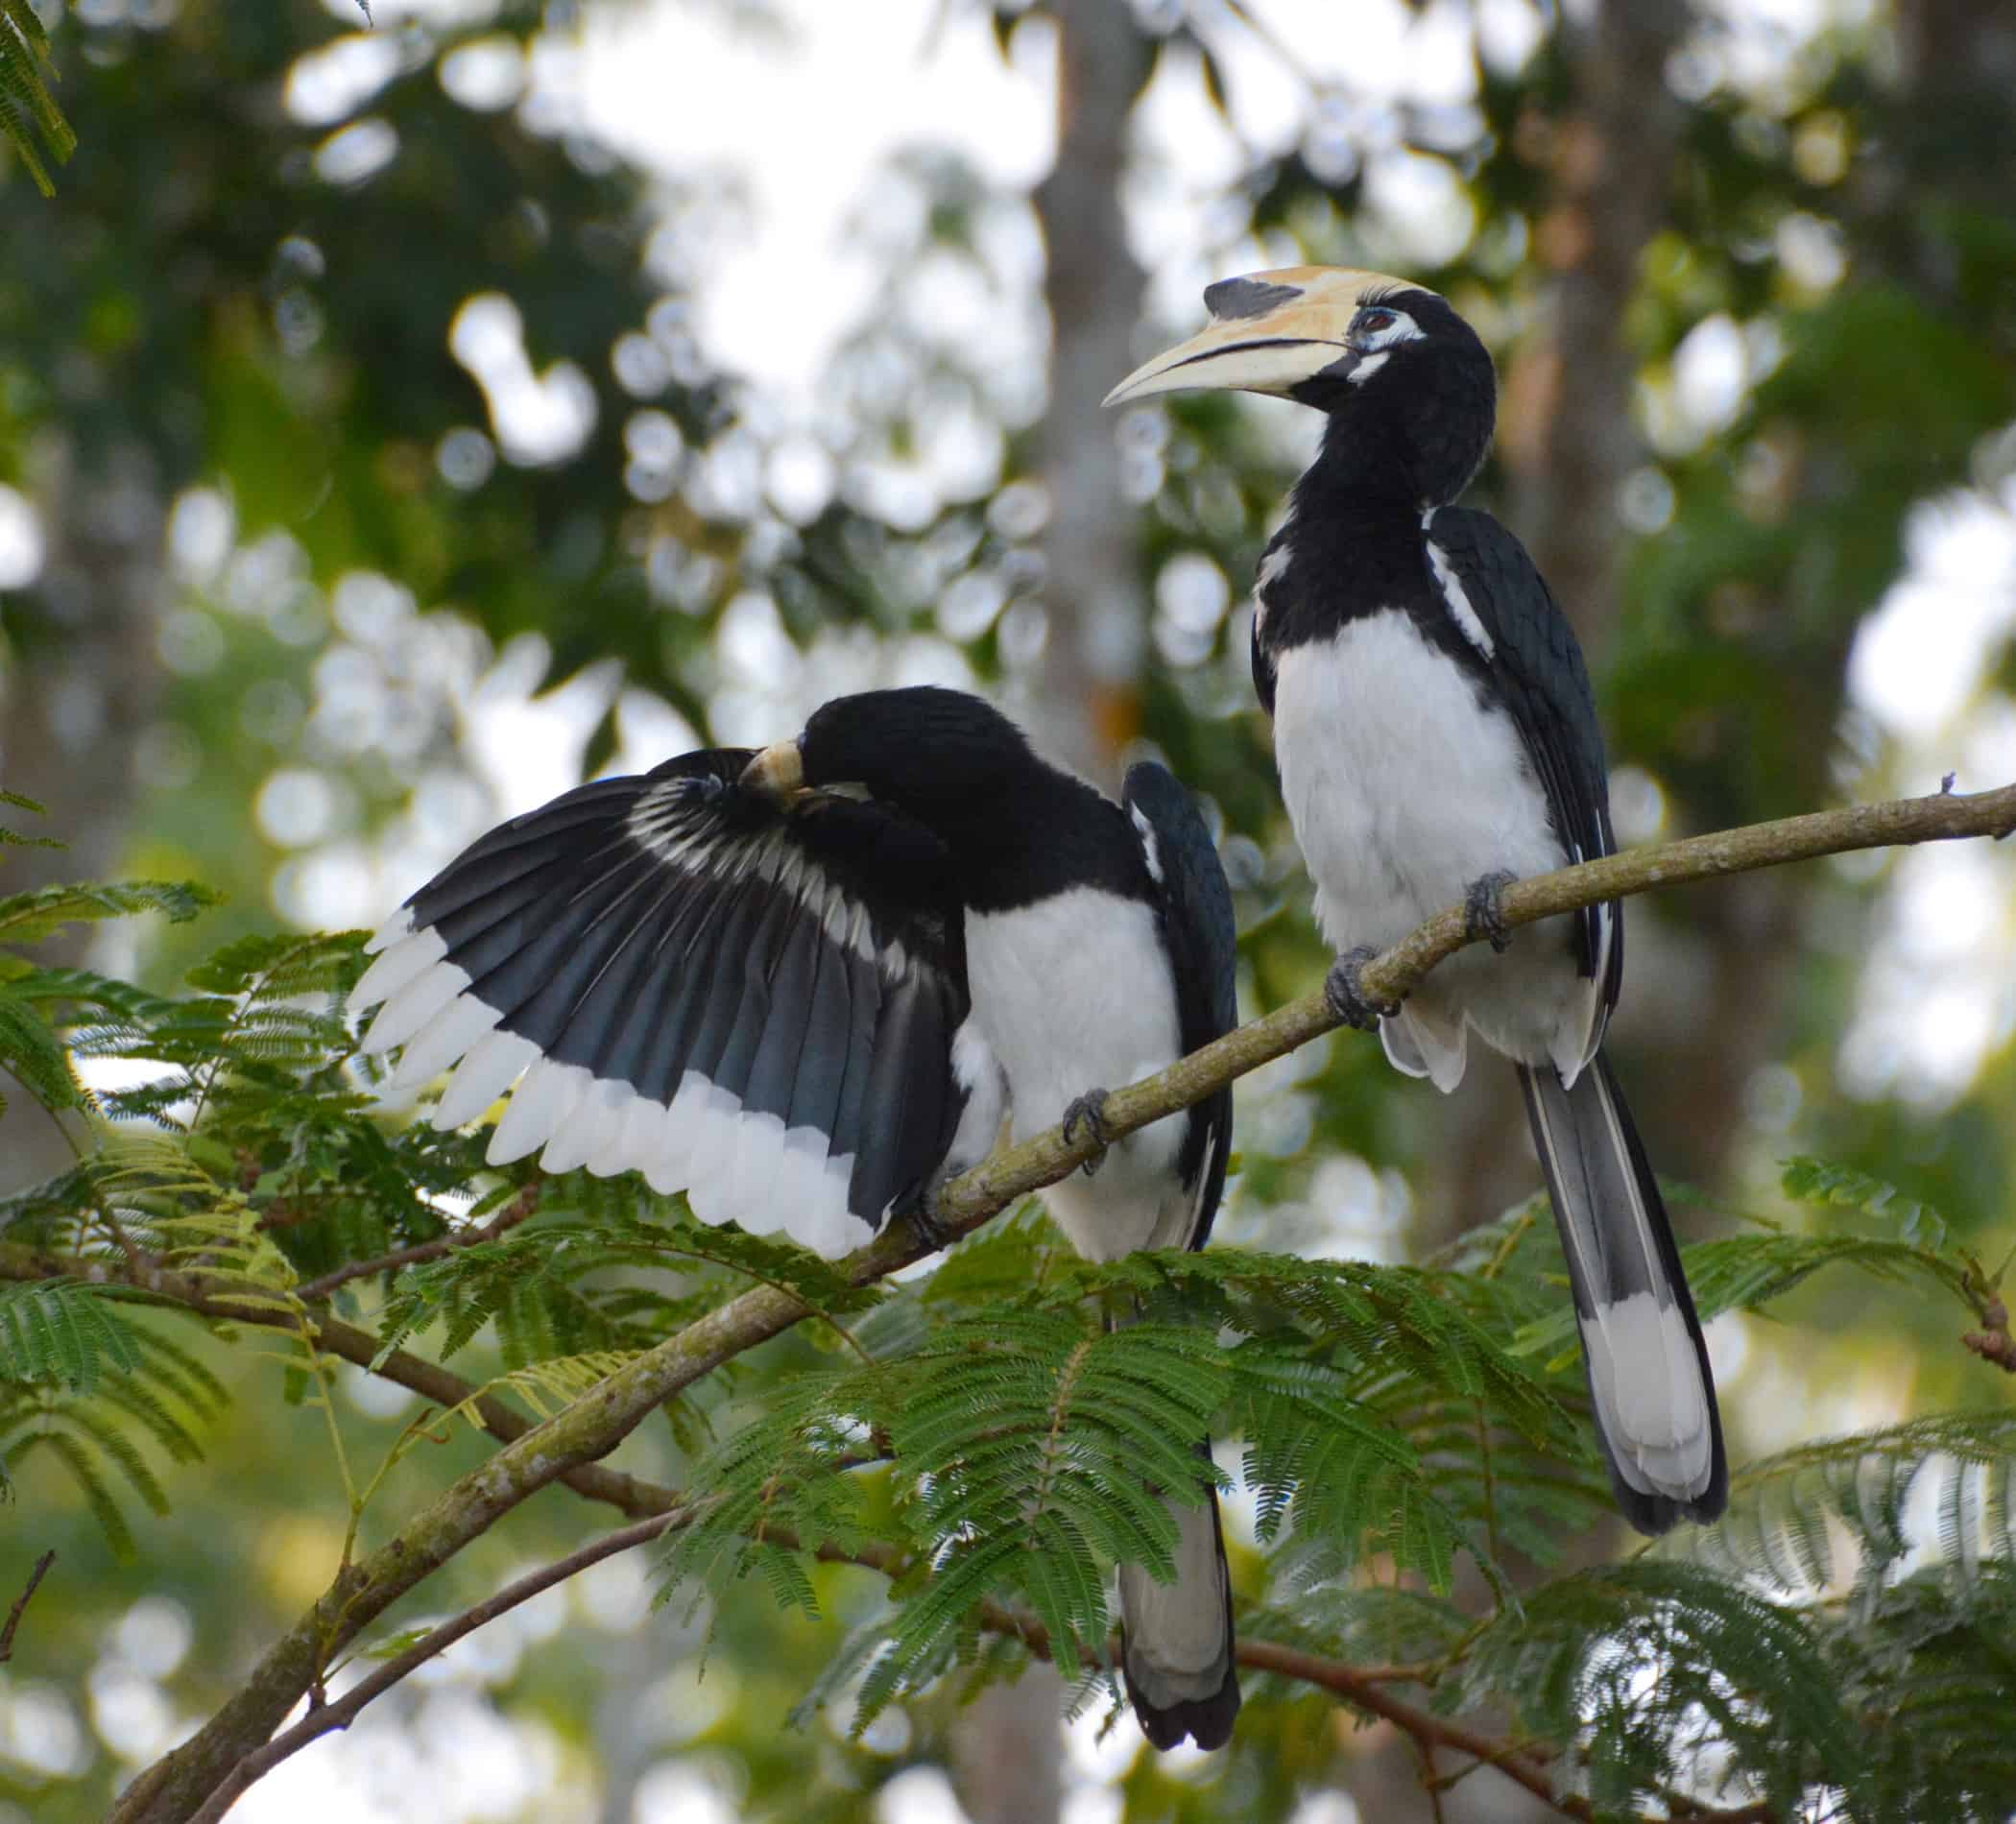 Sunset Valley Holiday Houses - Hornbills